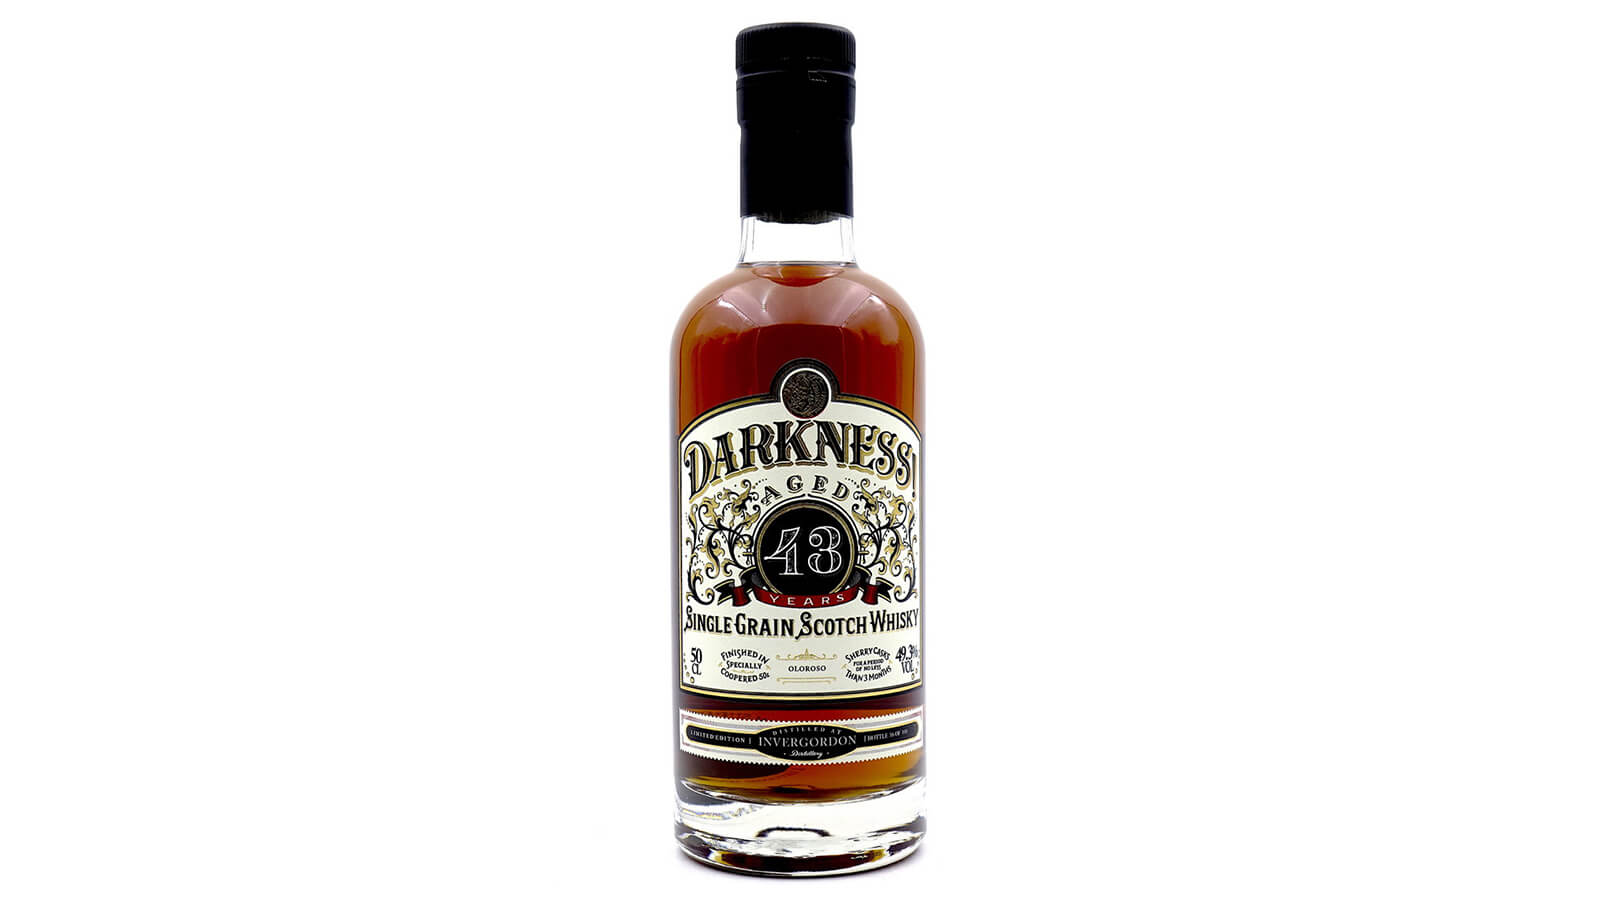 DARKNESS! INVERGORDON 43 YEAR OLD OLOROSO CASK FINISH